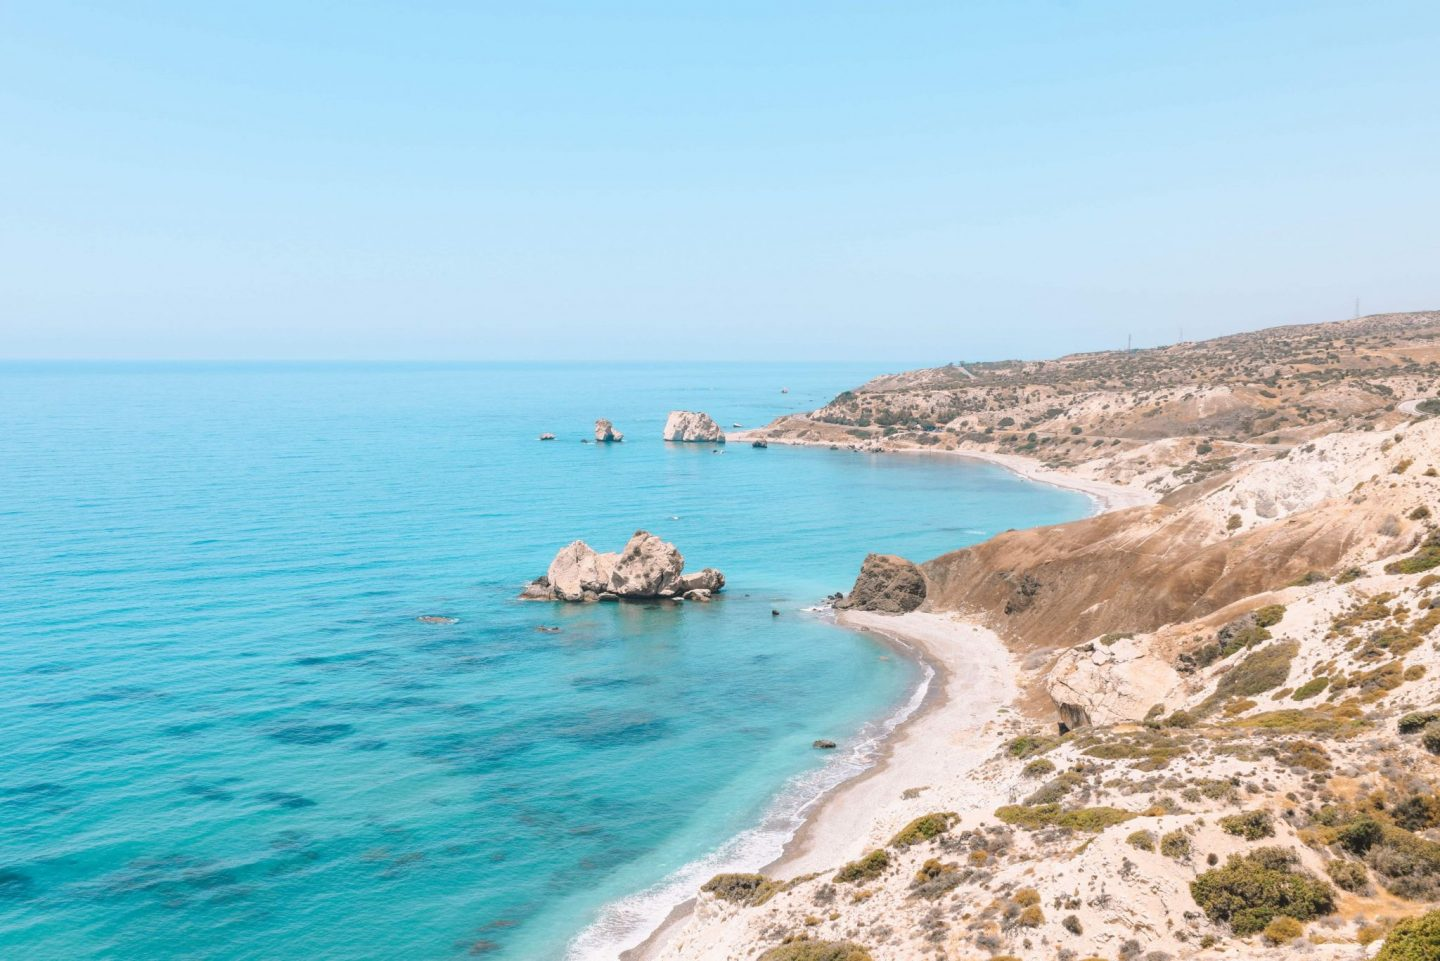 The Airbnb Apartments in Cyprus are pretty economic, so you can enjoy this views without spending too much. Planning | Top Tips for using AirBnB to rent accommodation when traveling